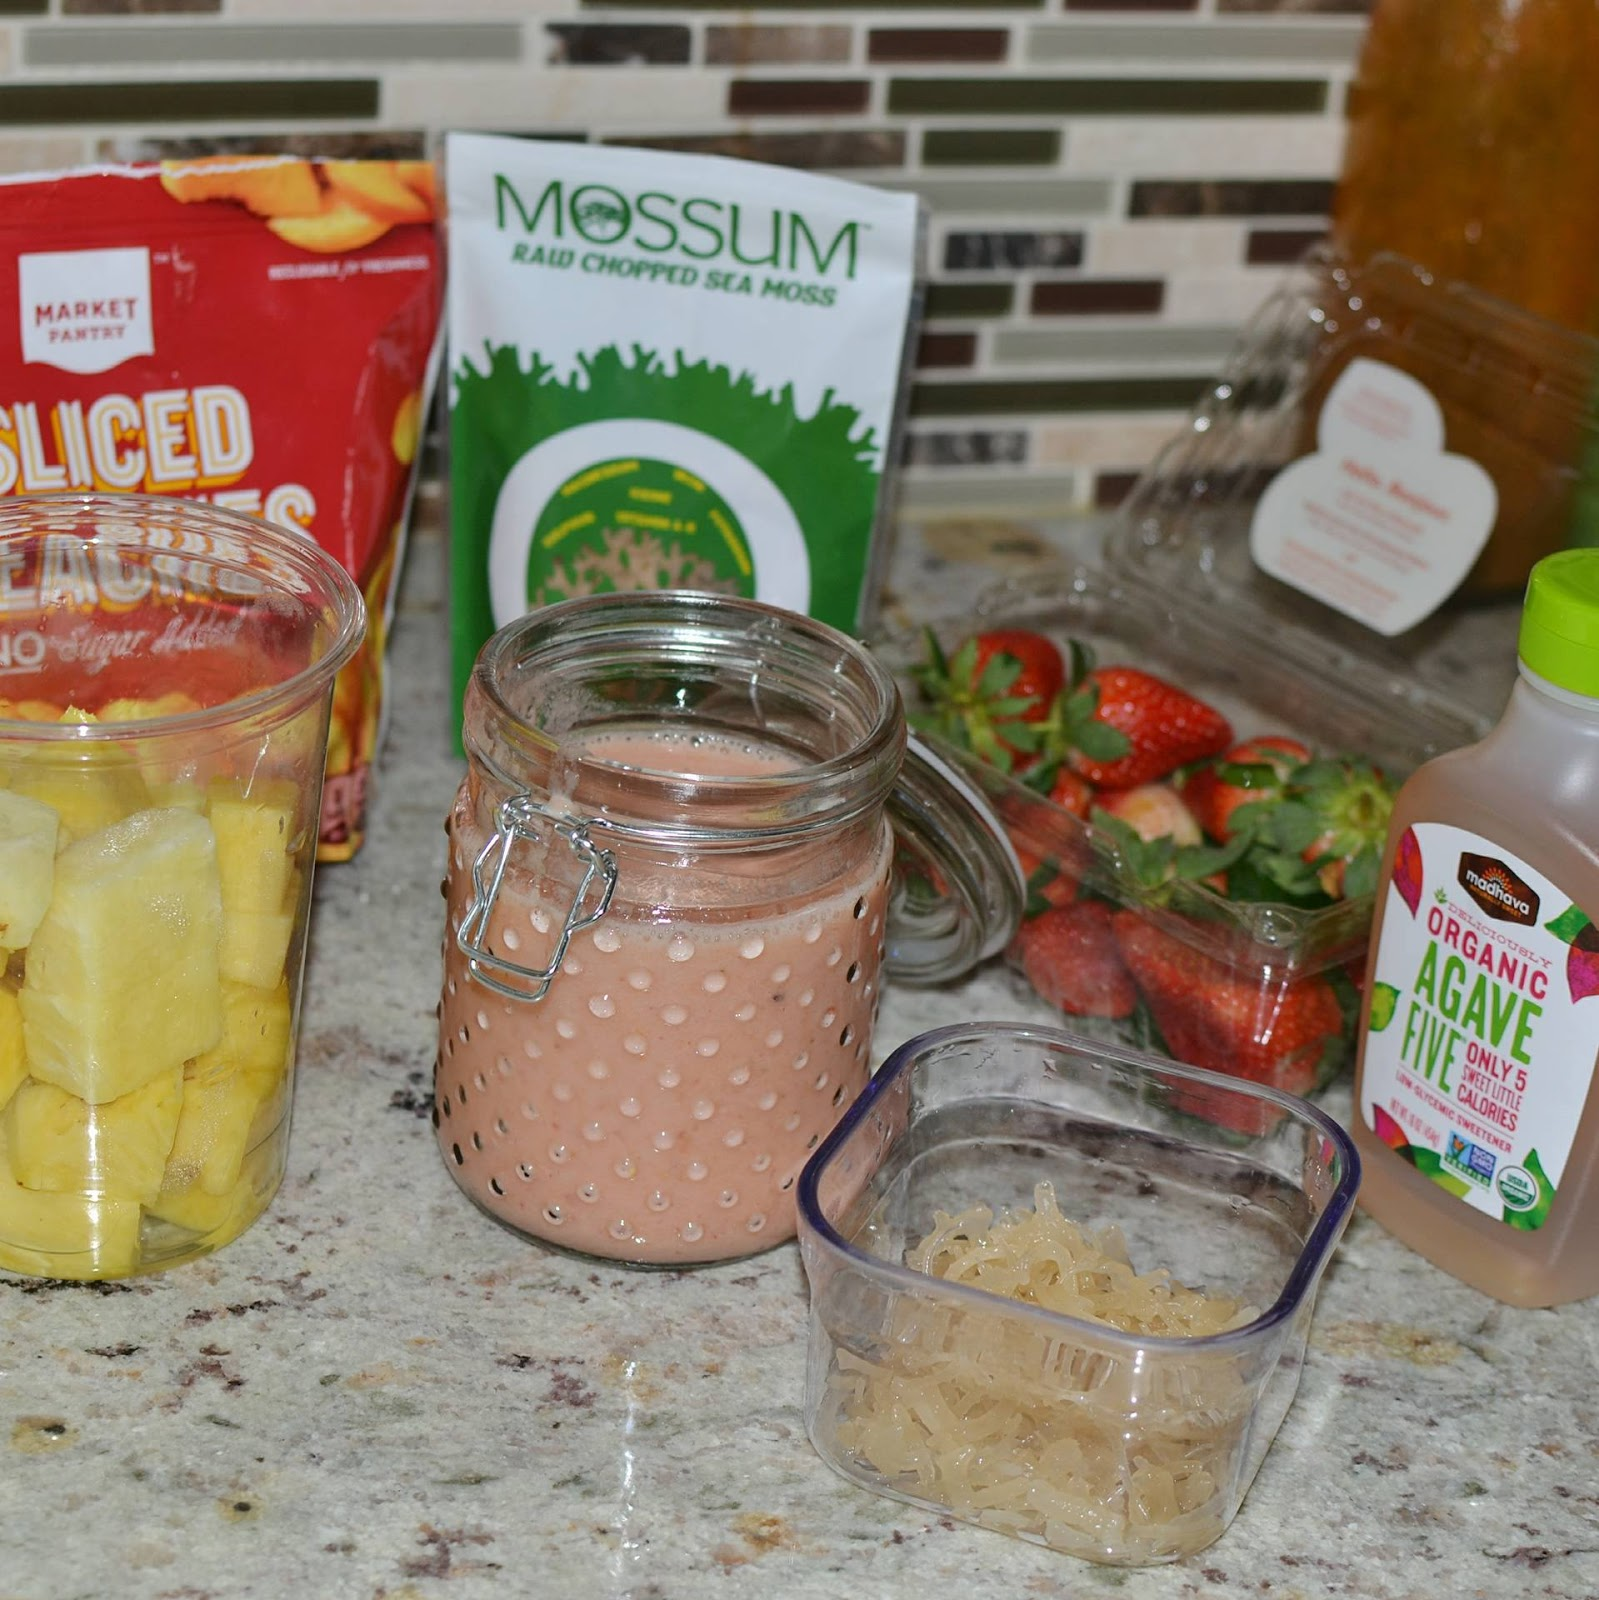 My First Smoothie With Mossum Sea Moss | The Glam Mom